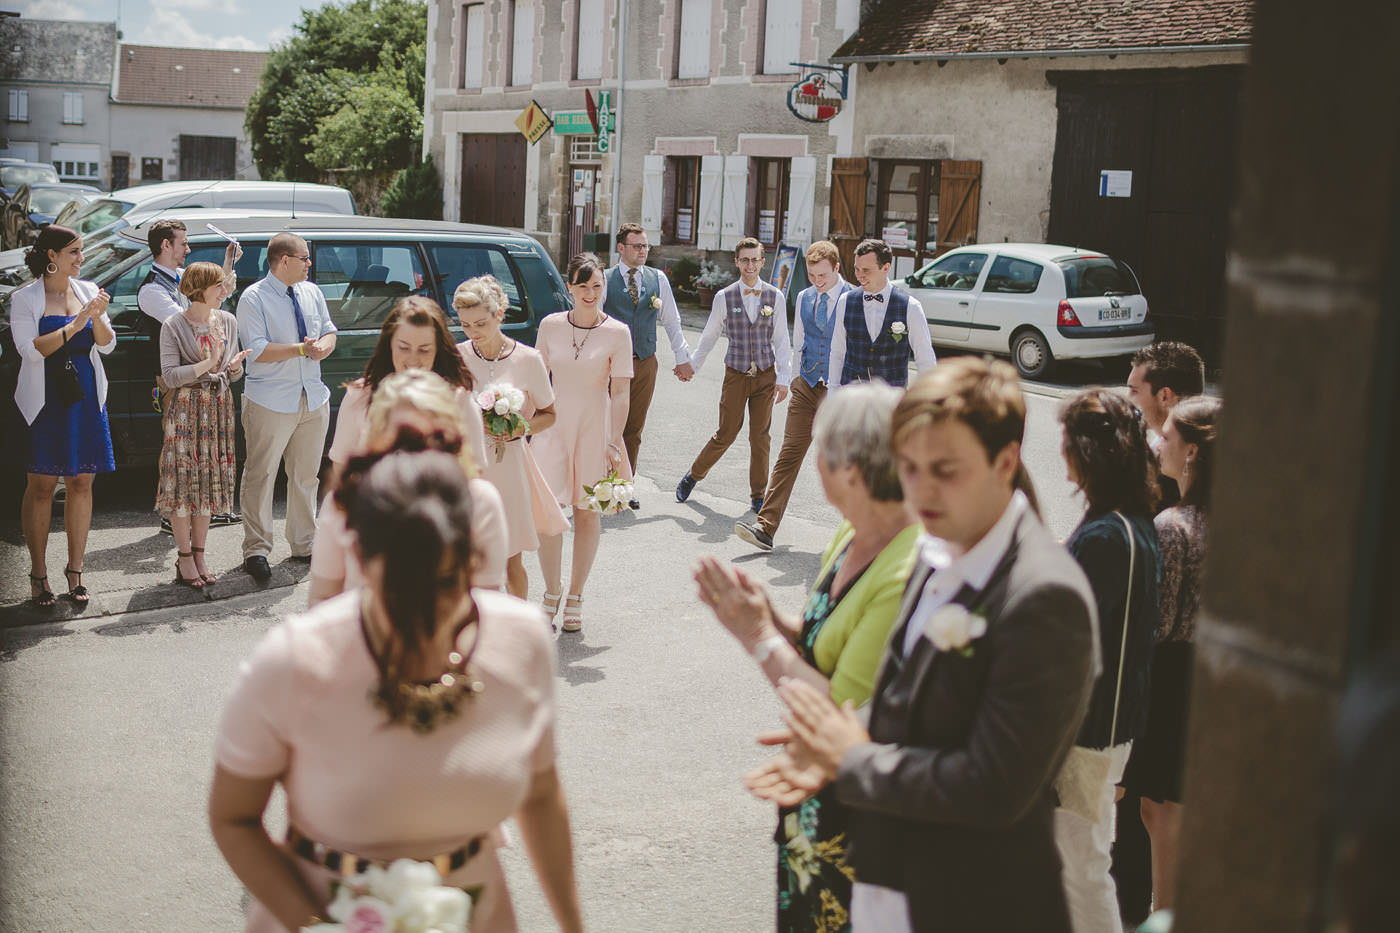 anthonytyler saint hillaire la treille france wedding photographer 0074